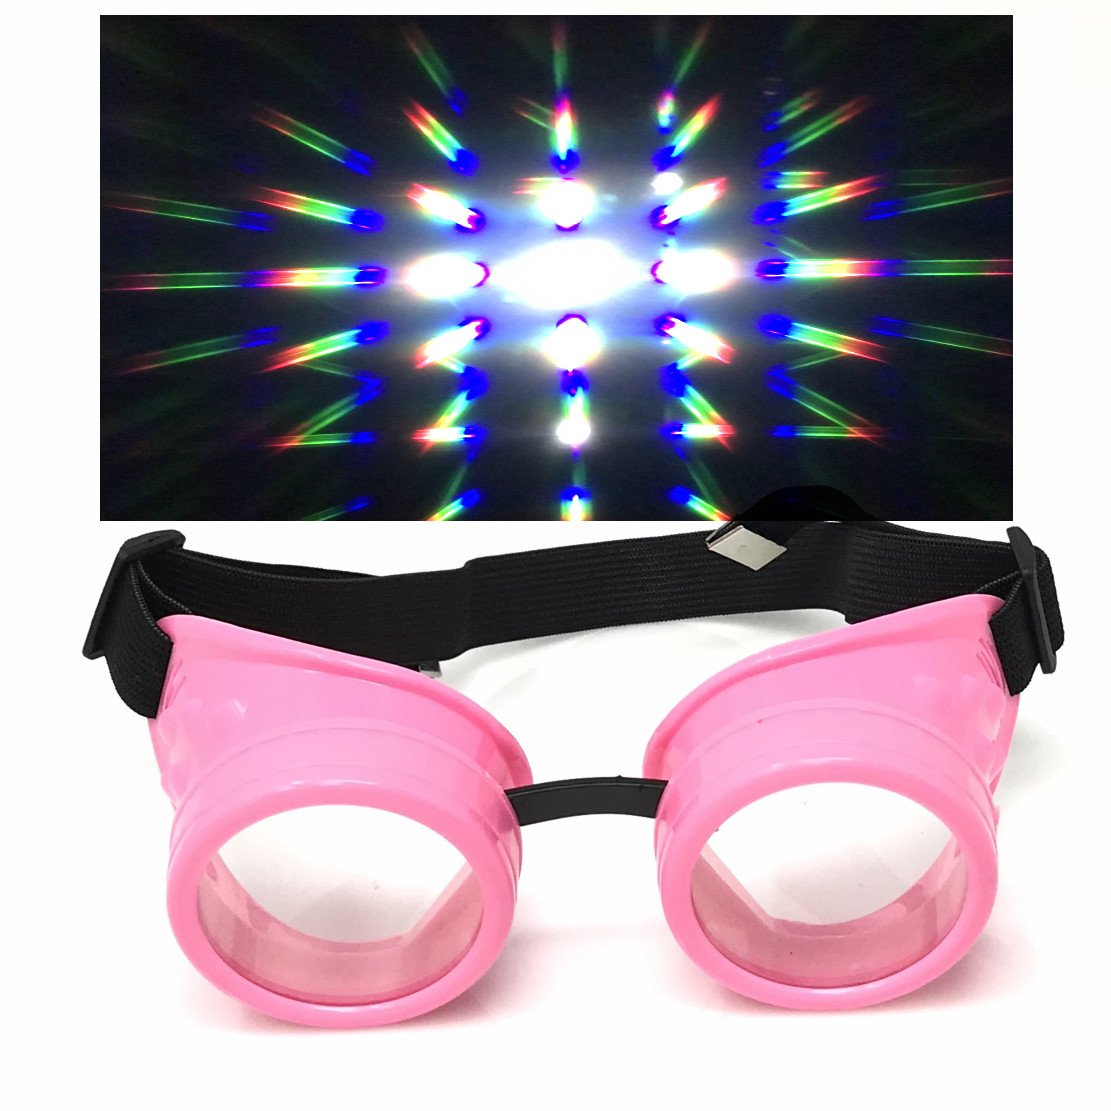 UV Glow in The Dark Steampunk Rave Goggles Prism Retro Round Diffraction Glasses Pink Frames